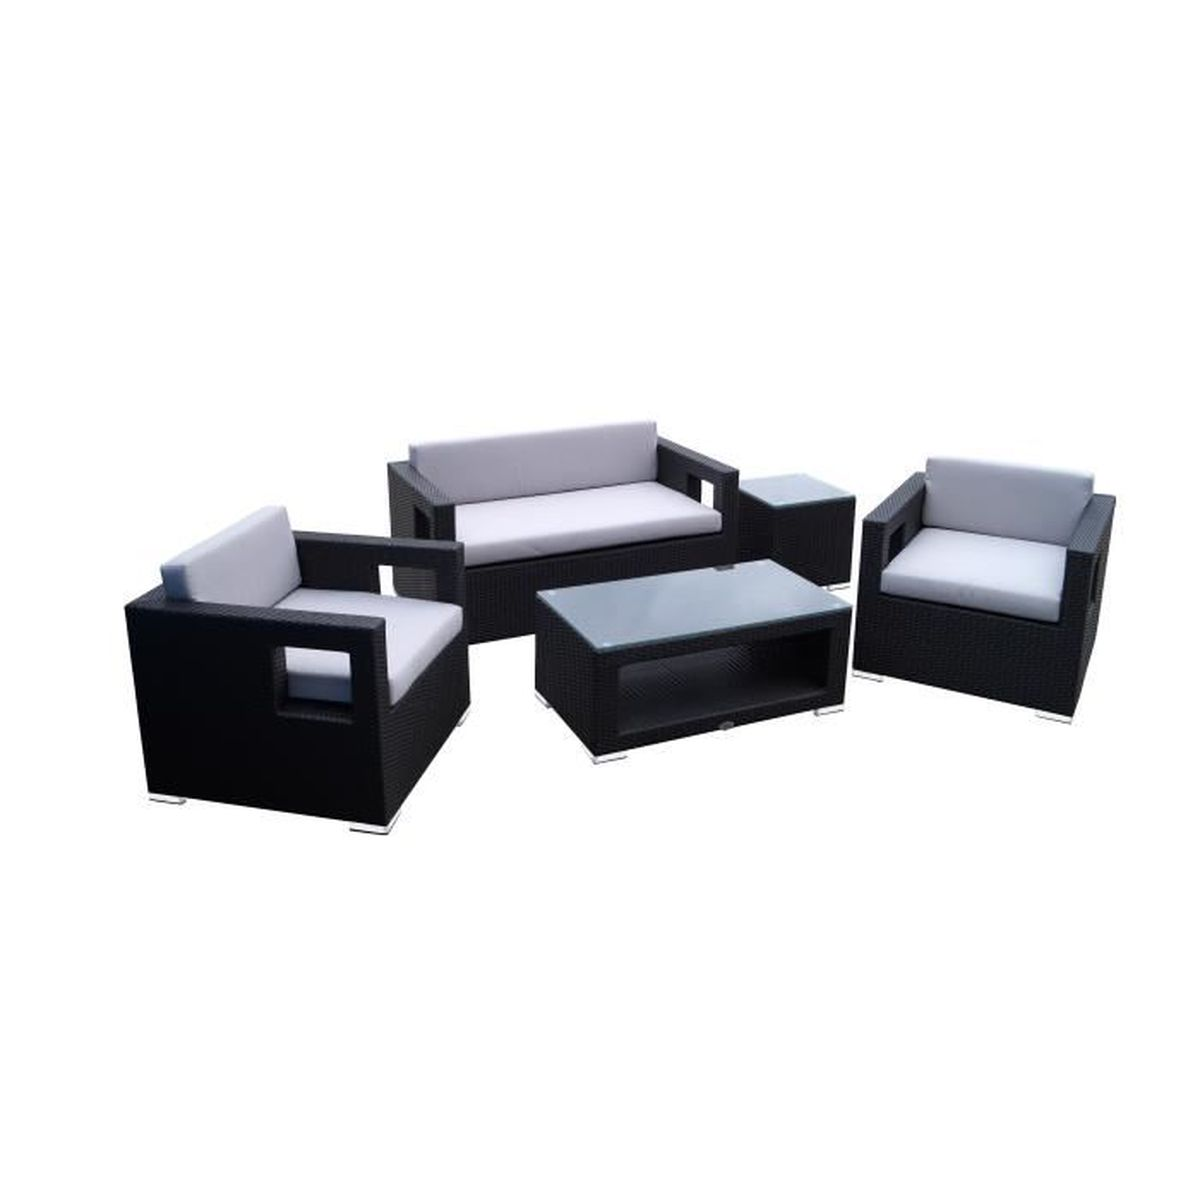 salon de jardin en poly rotin tress ensemble meubles lounge de jardin design carr l gant. Black Bedroom Furniture Sets. Home Design Ideas